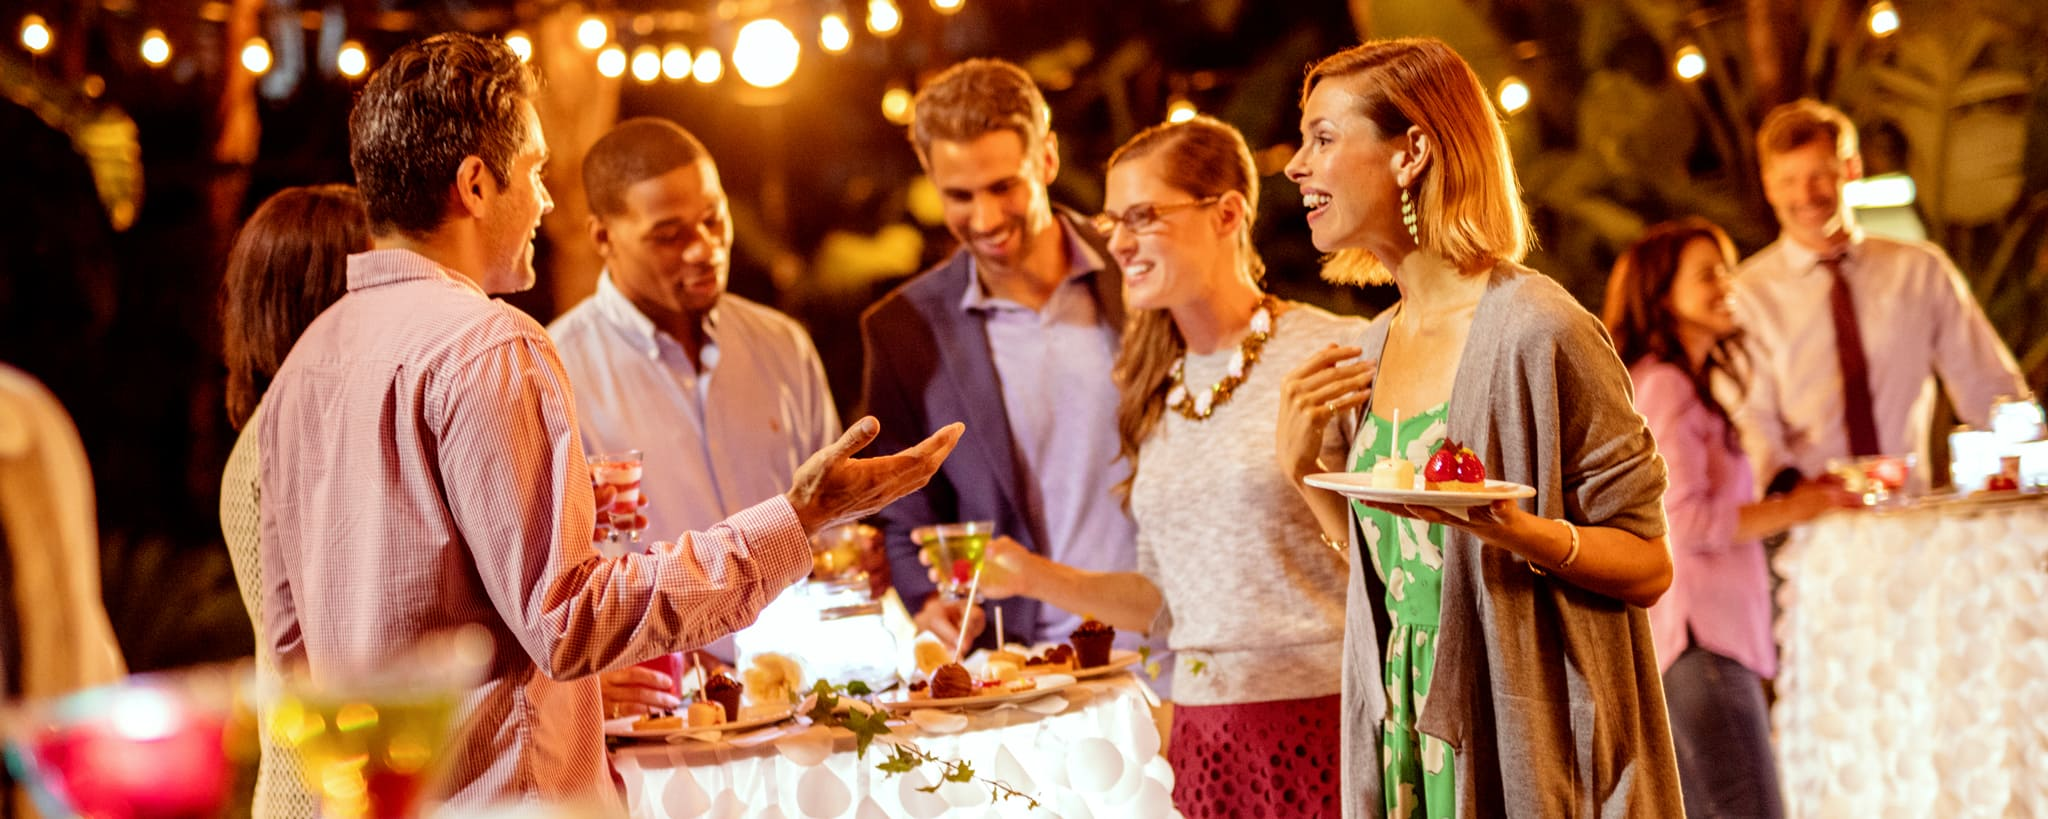 Smiling people standing around high tables draped with linens featuring dessert plates and beverages in an outdoor setting